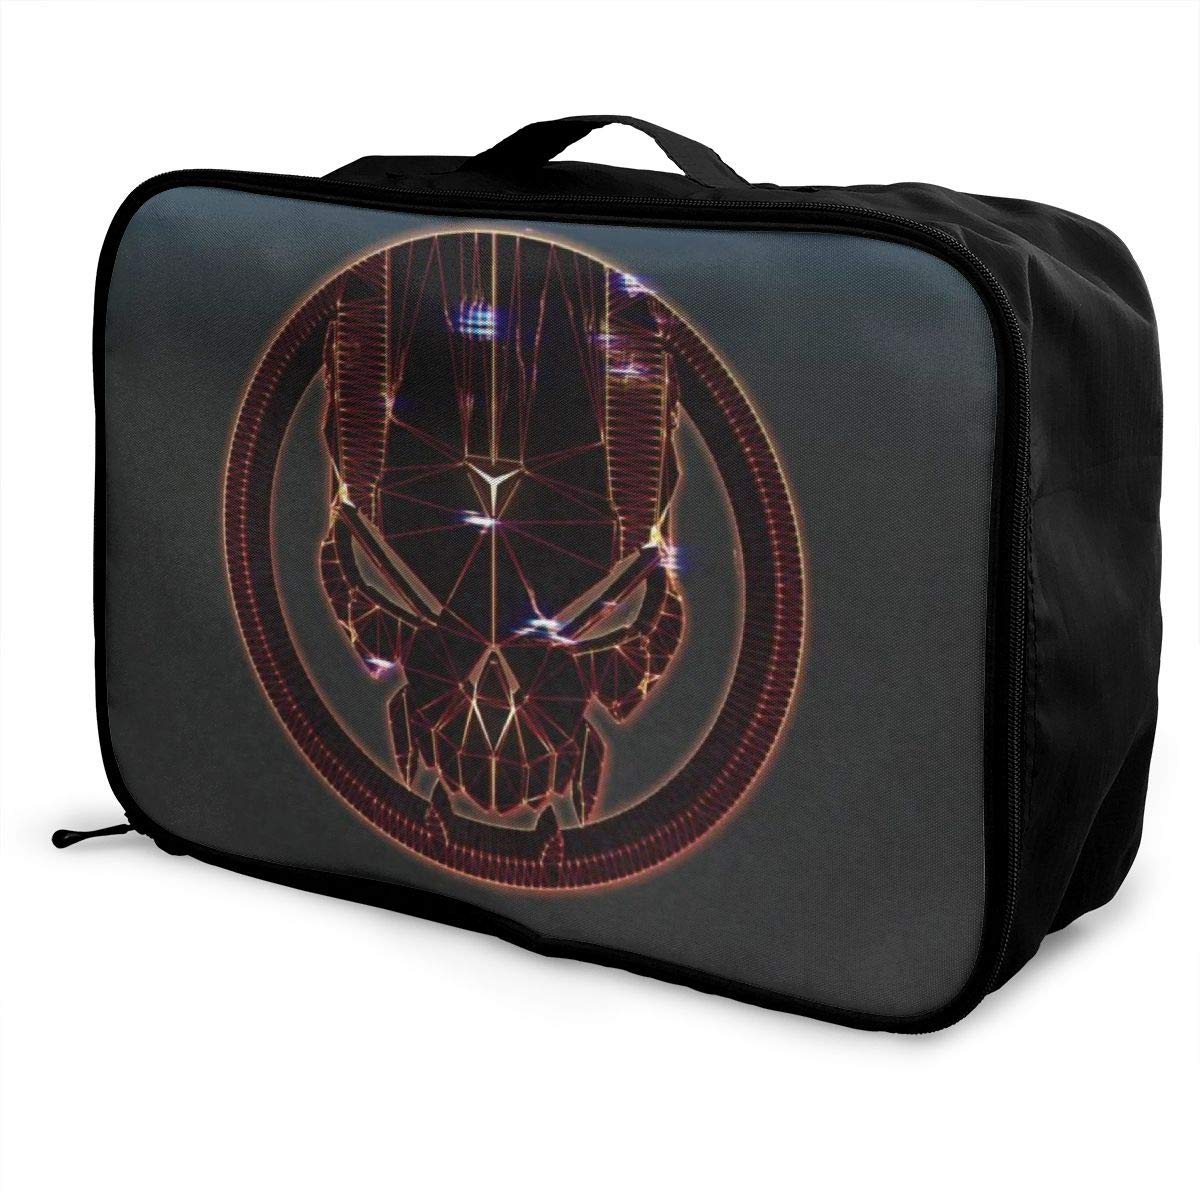 Pirates Of The Caribbean Skull Customize Casual Portable Travel Bag Suitcase Storage Bag Luggage Packing Tote Bag Trolley Bag